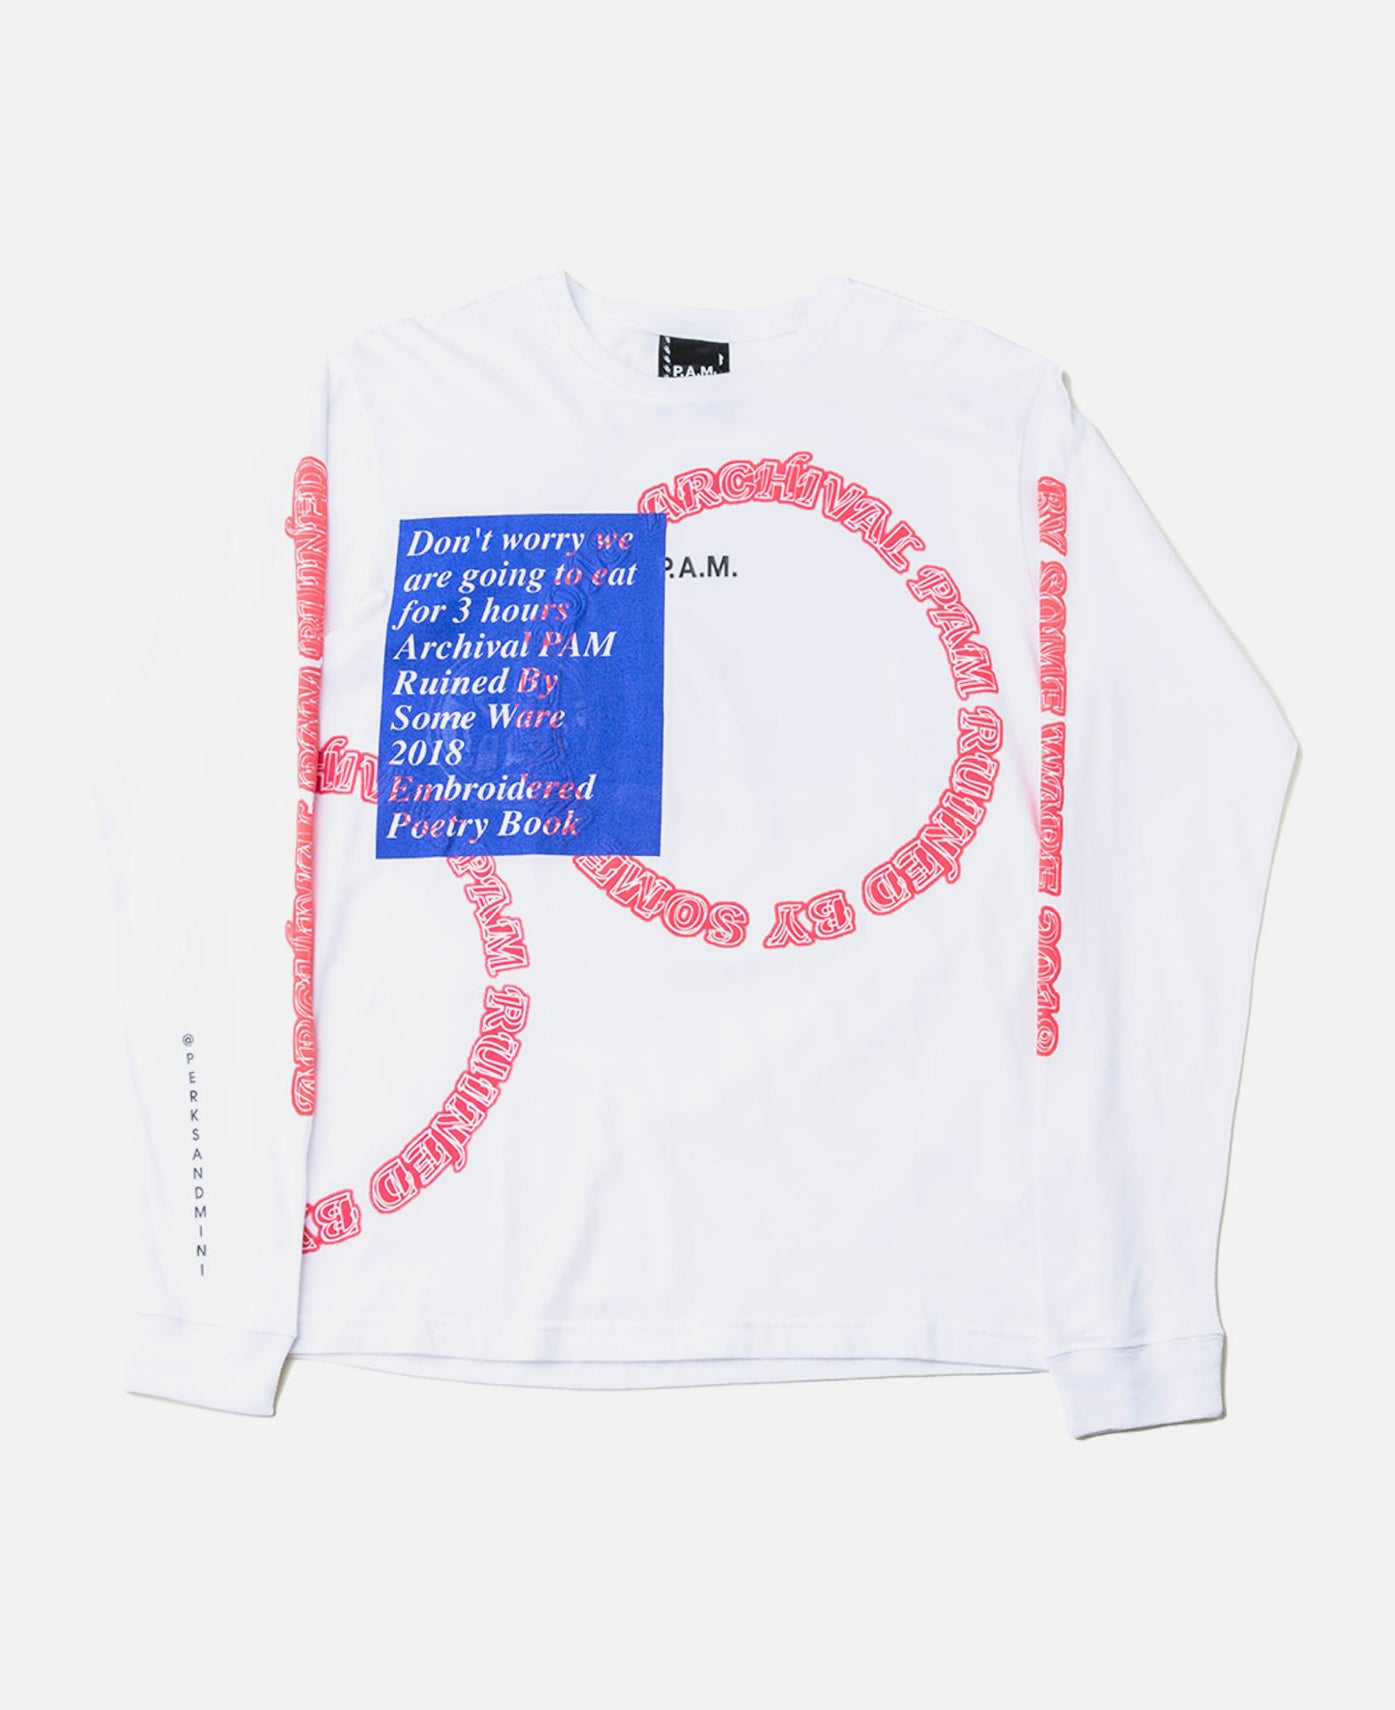 Some Ware x P.A.M. Mini Logo L/S Tee